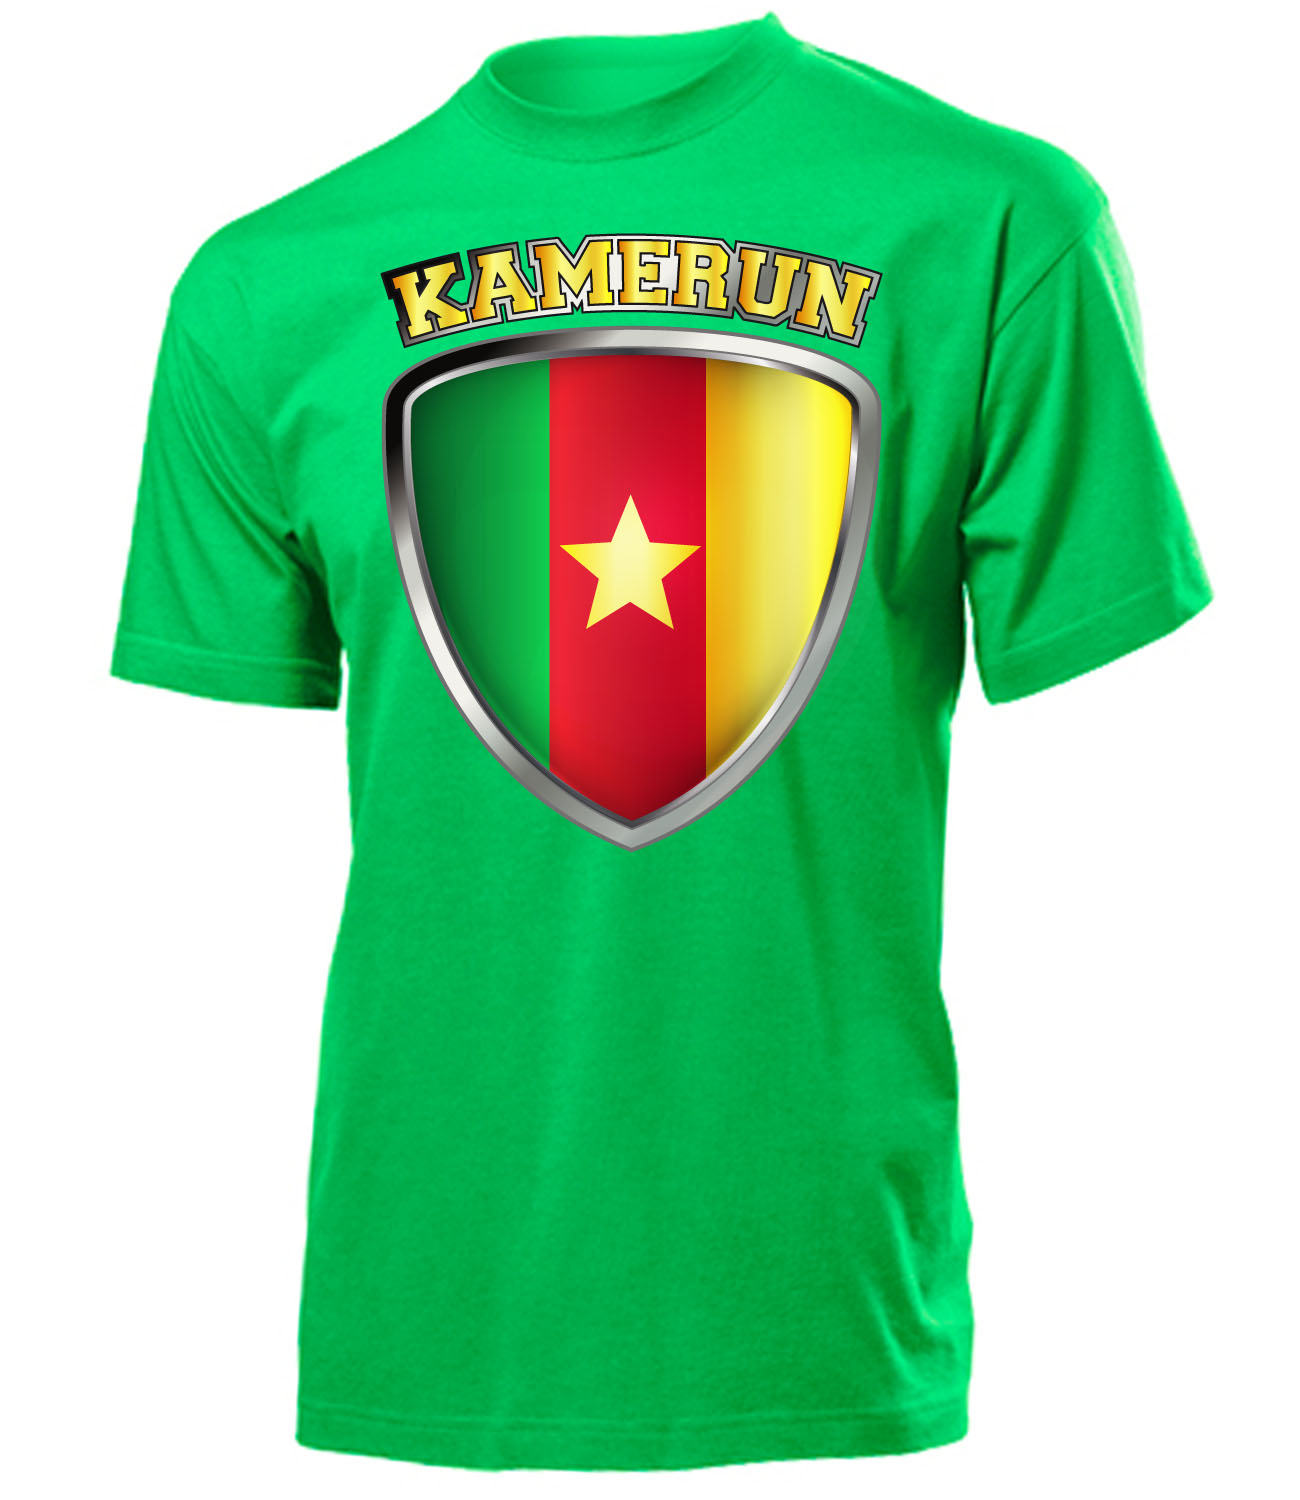 fussball fanartikel wm 2018 kamerun fanshirt t shirt. Black Bedroom Furniture Sets. Home Design Ideas